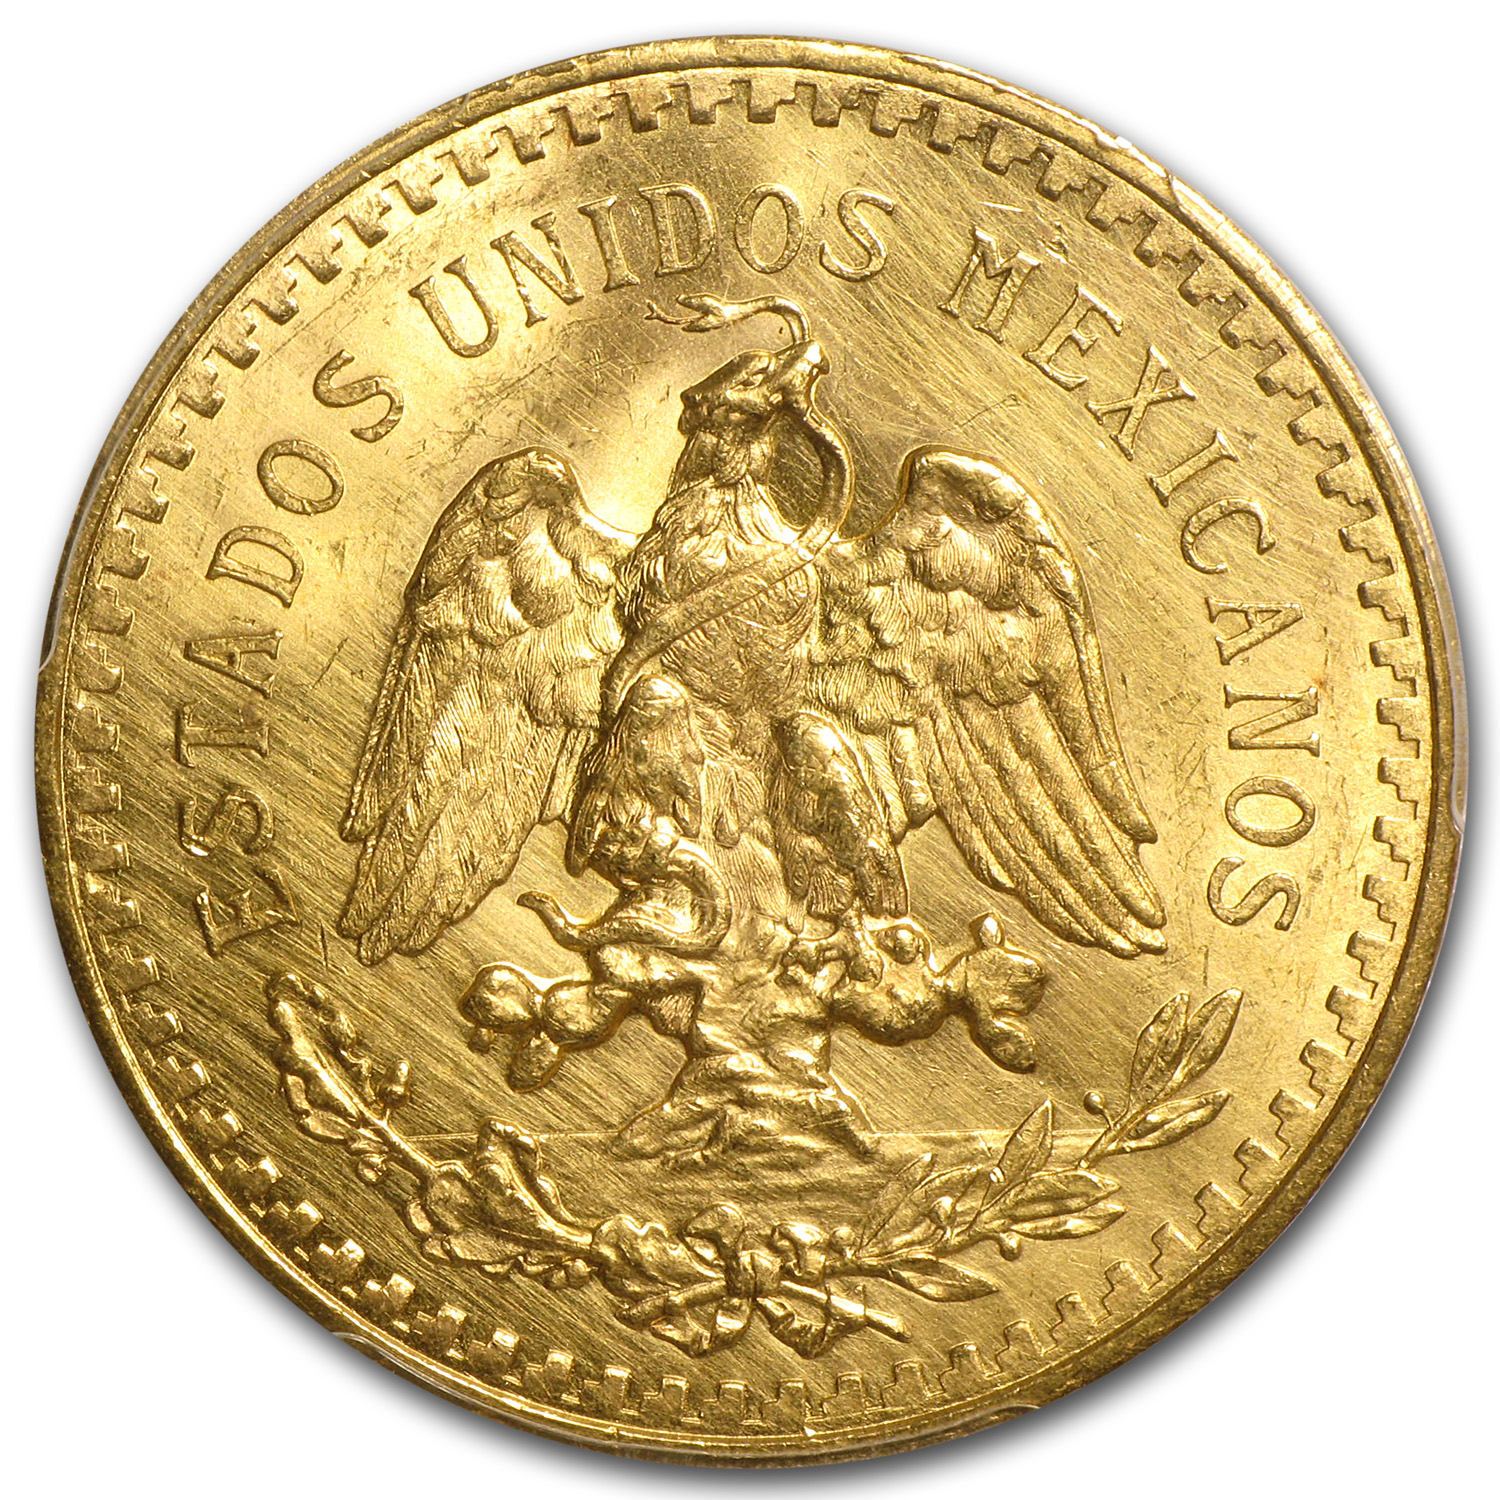 Mexico 1931 50 Pesos Gold Coin - Unc Details - Cleaned PCGS